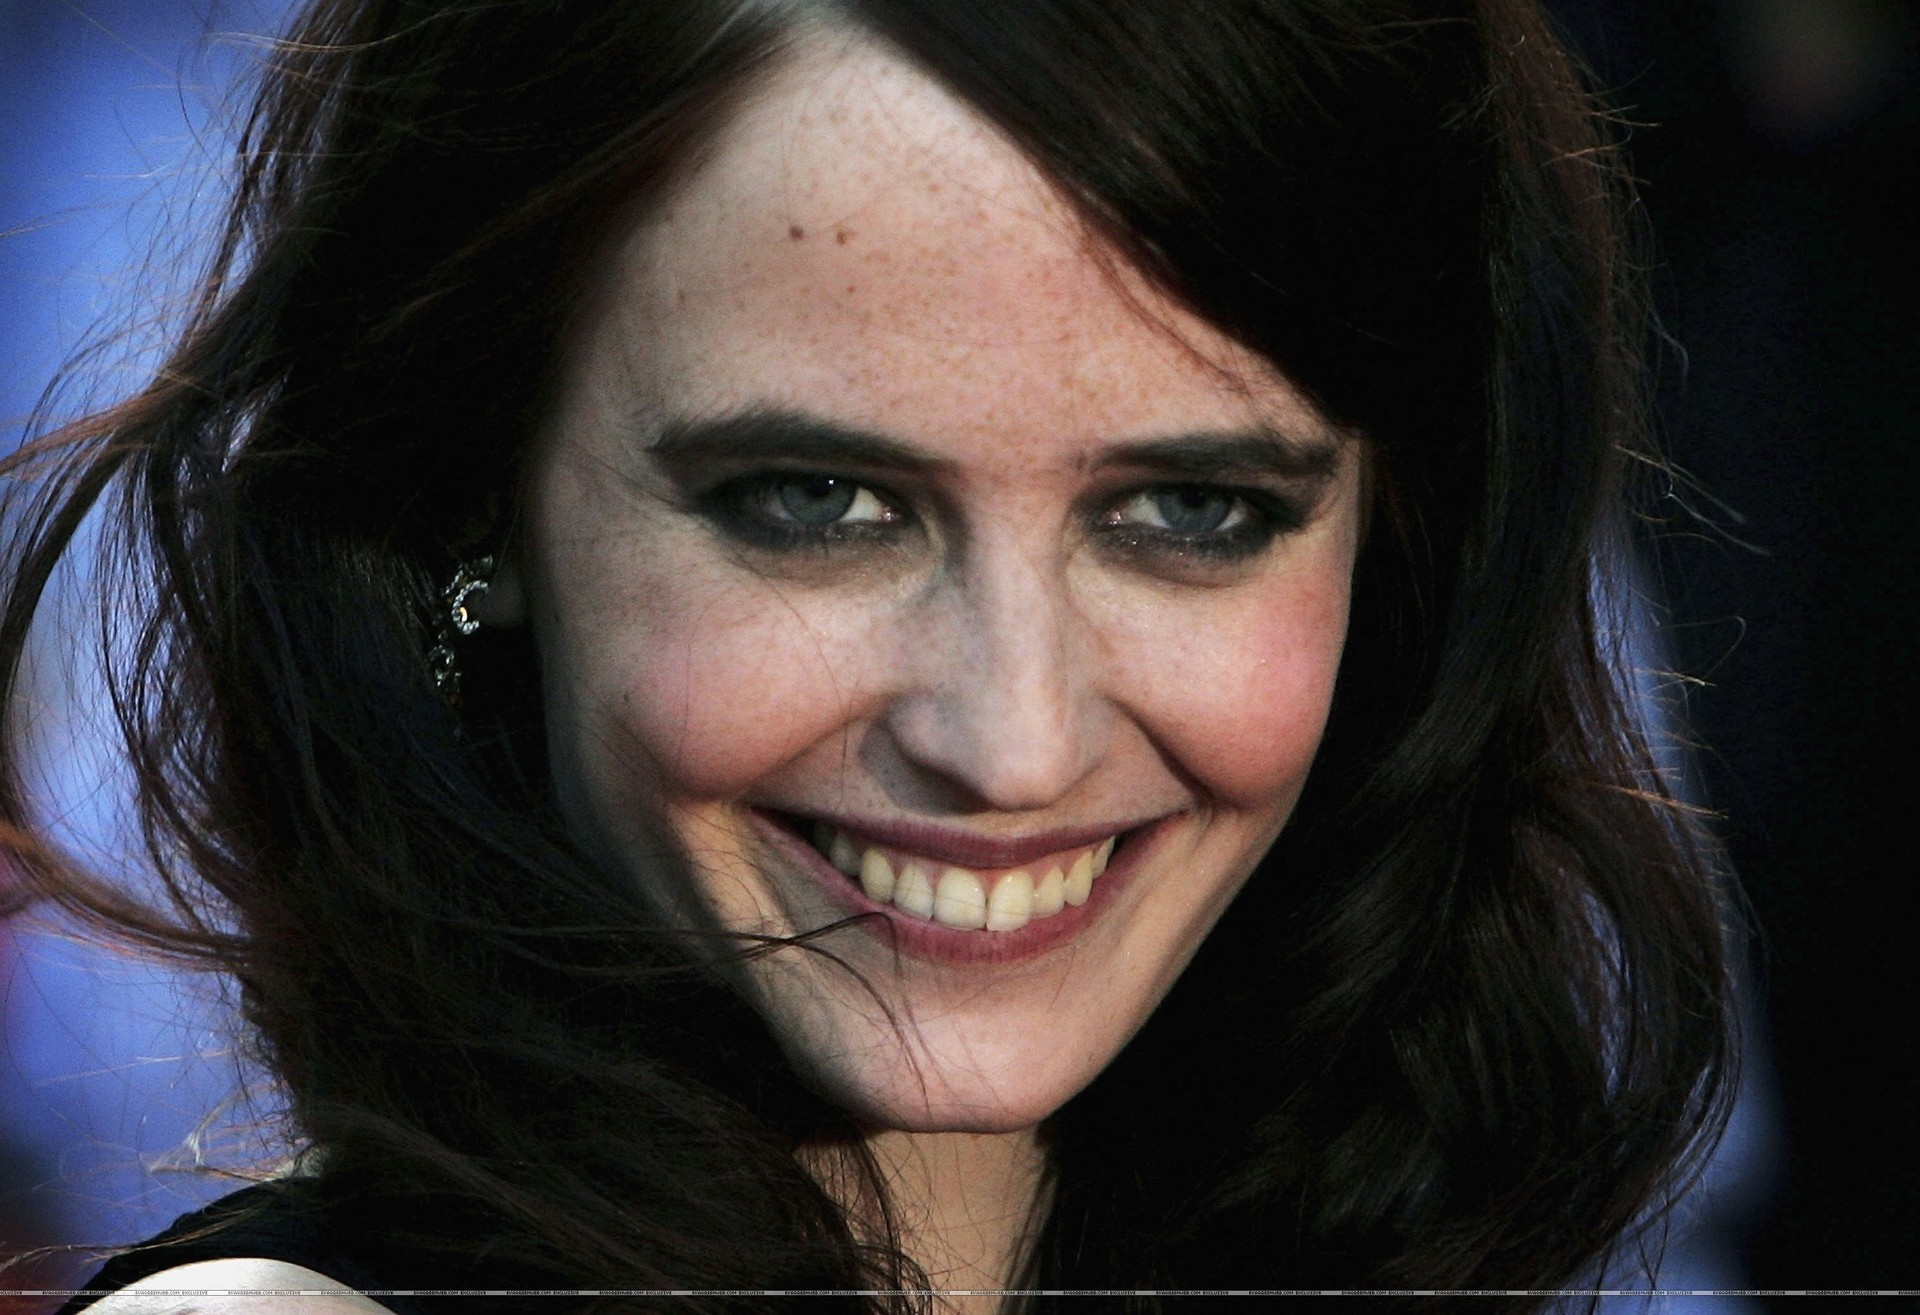 Eva Green - Eva Green Photo (241562) - Fanpop Eva Green Images